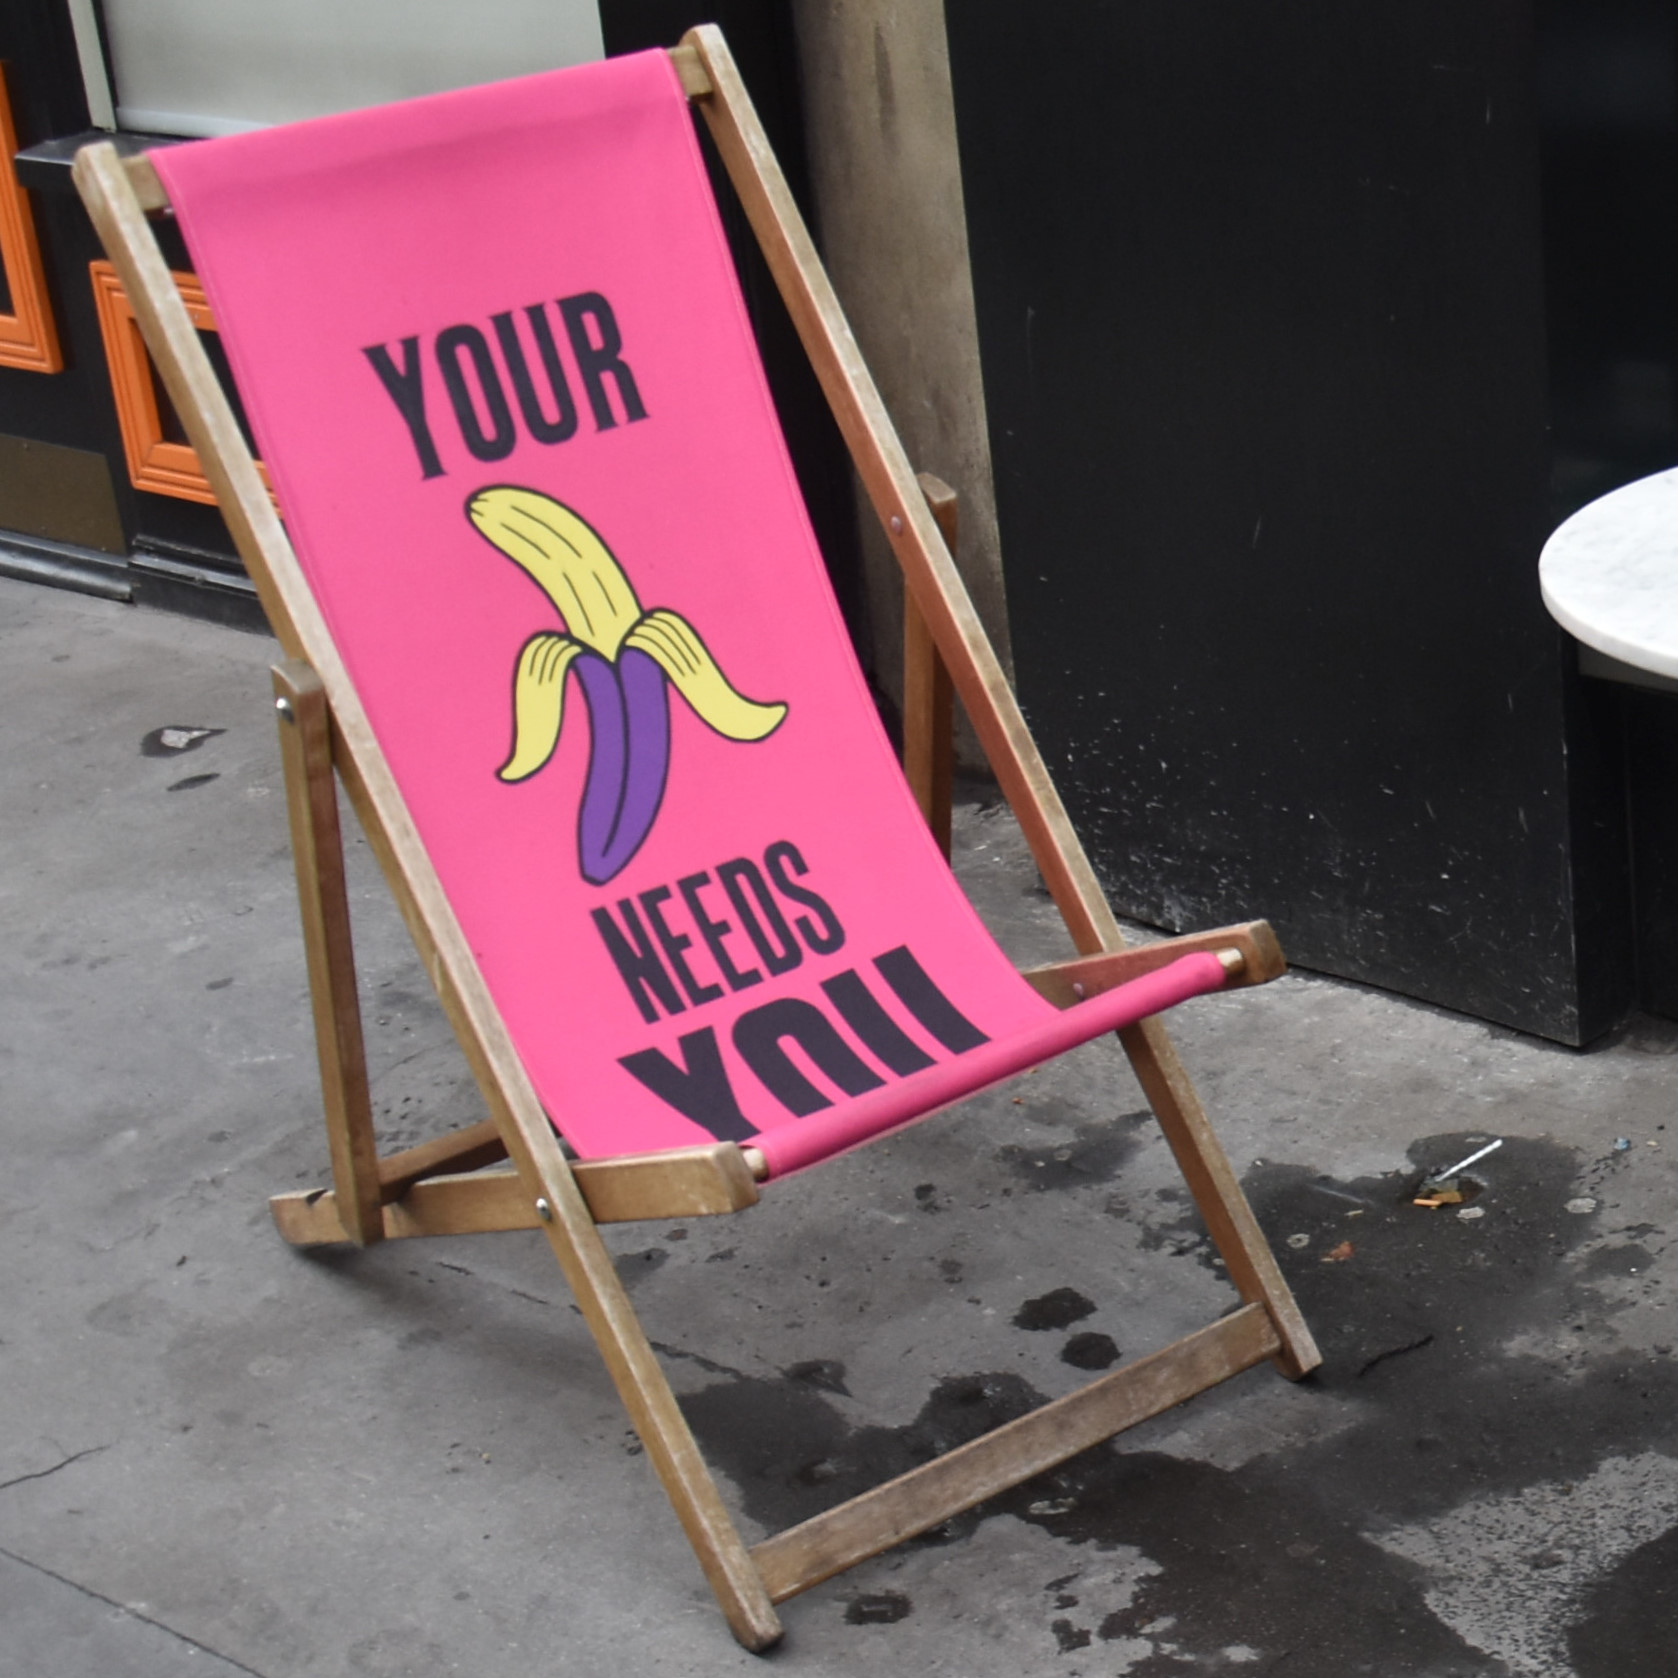 Your Banana Needs You. One of the two deckchairs outside Scarlett Green in Soho.